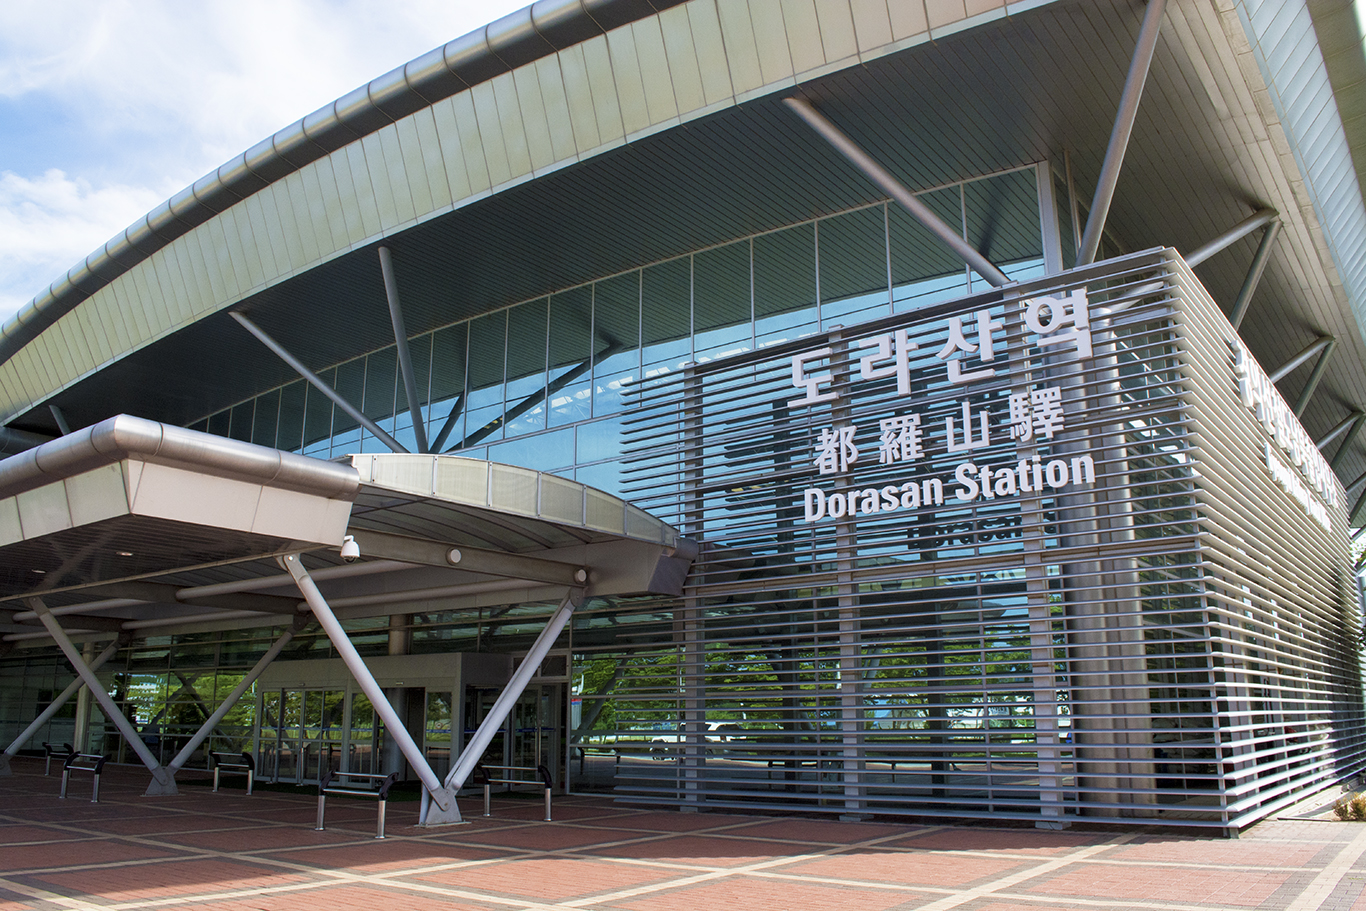 The entrance to Dorasan Station on the South Korean side of the Military Demarcation Line. Dorasan Station was initially planned to serve a train route between the two Koreas, but North Korea eventually refused to collaborate. (CHRISTOPHER CAMERON/THE STATESMAN)